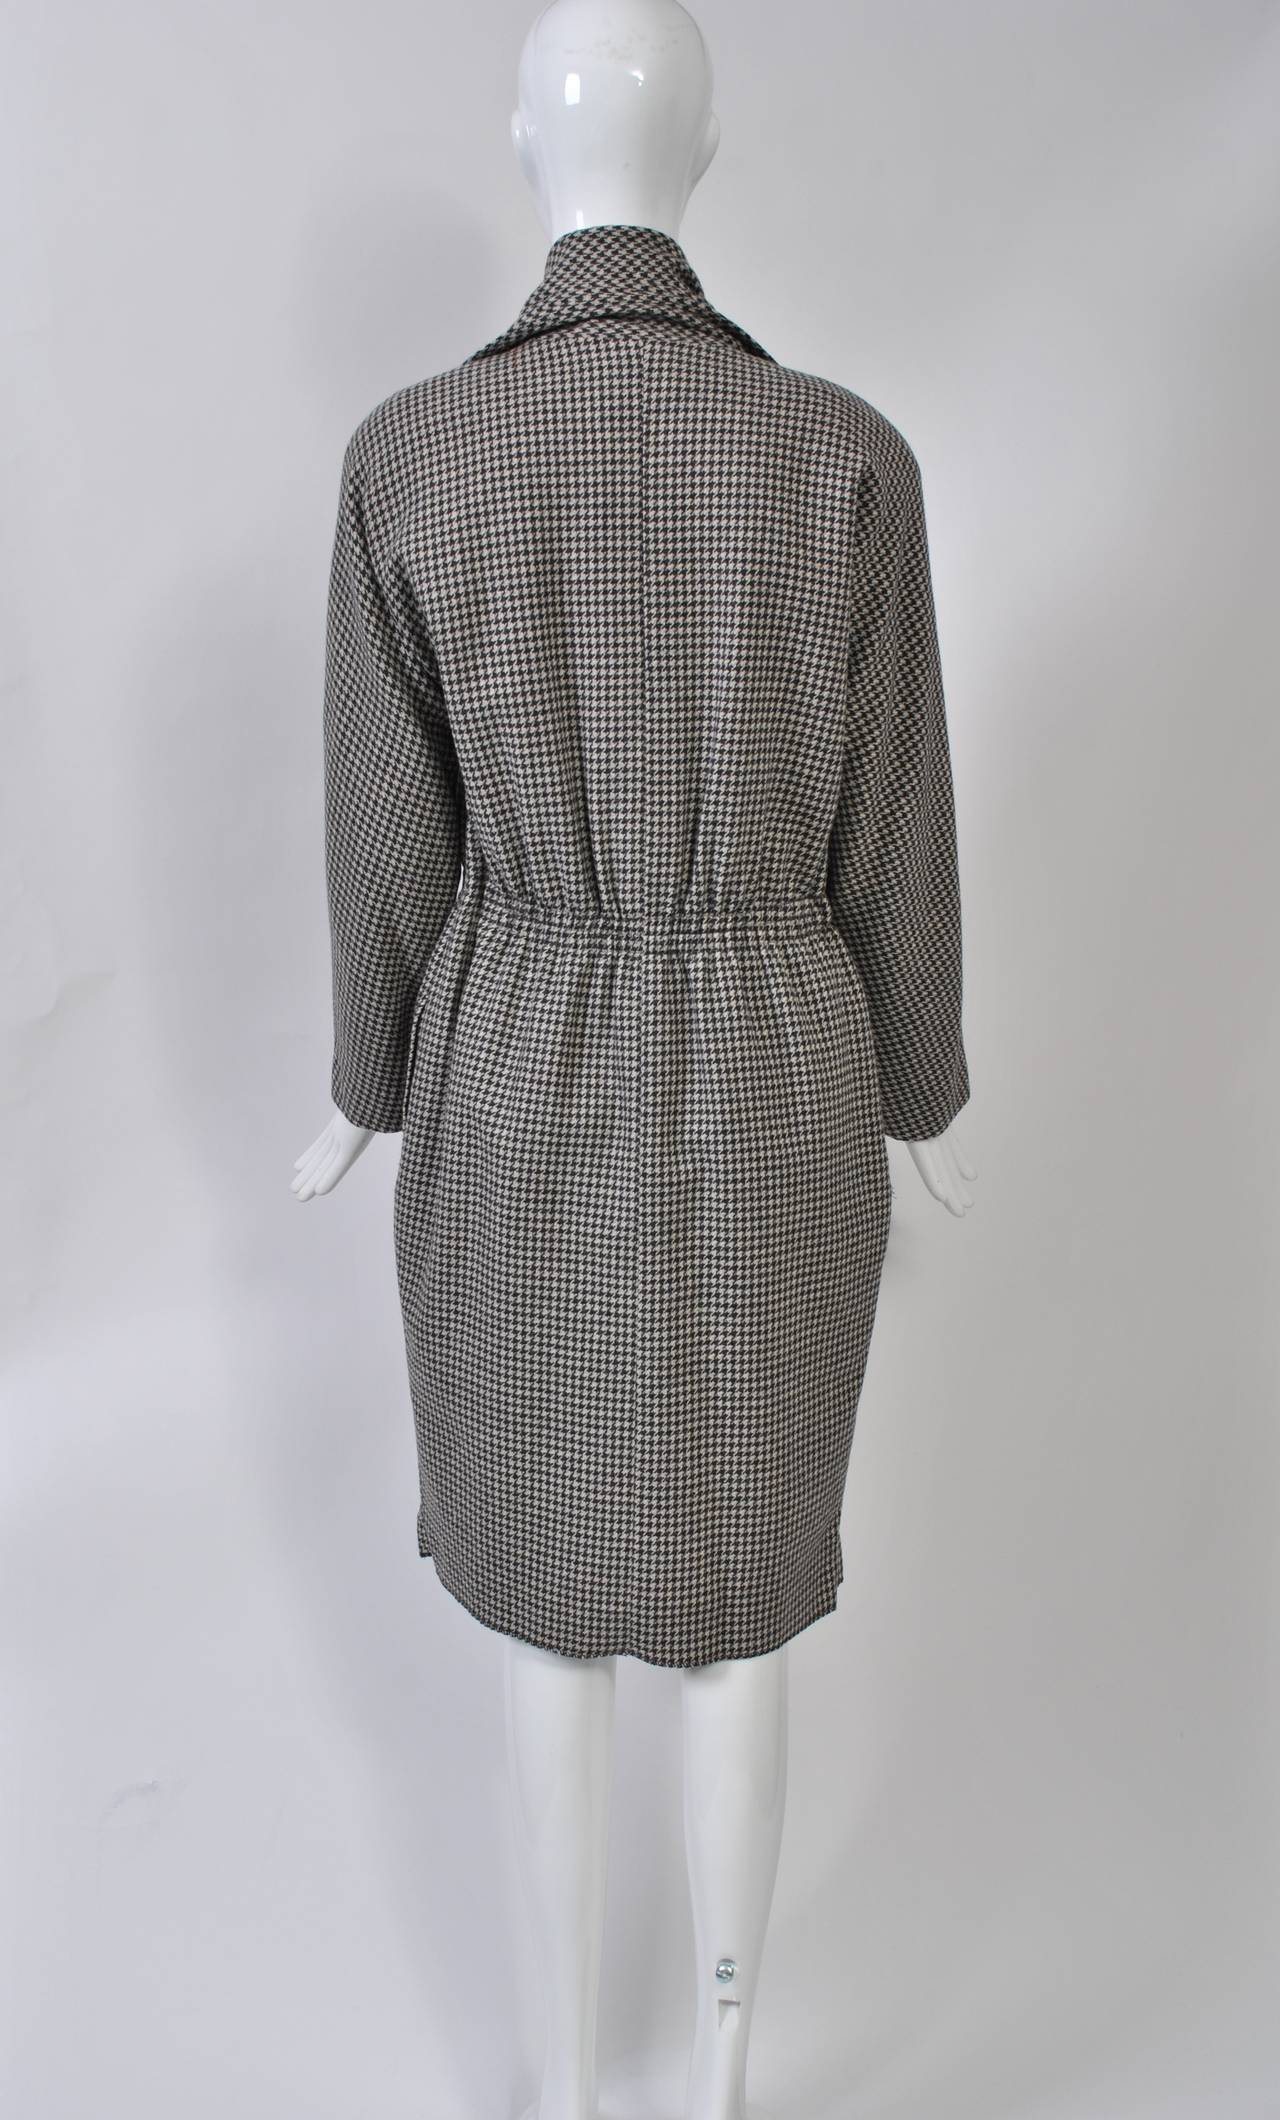 Tiktiner 1980s Coatdress In Excellent Condition For Sale In Alford, MA